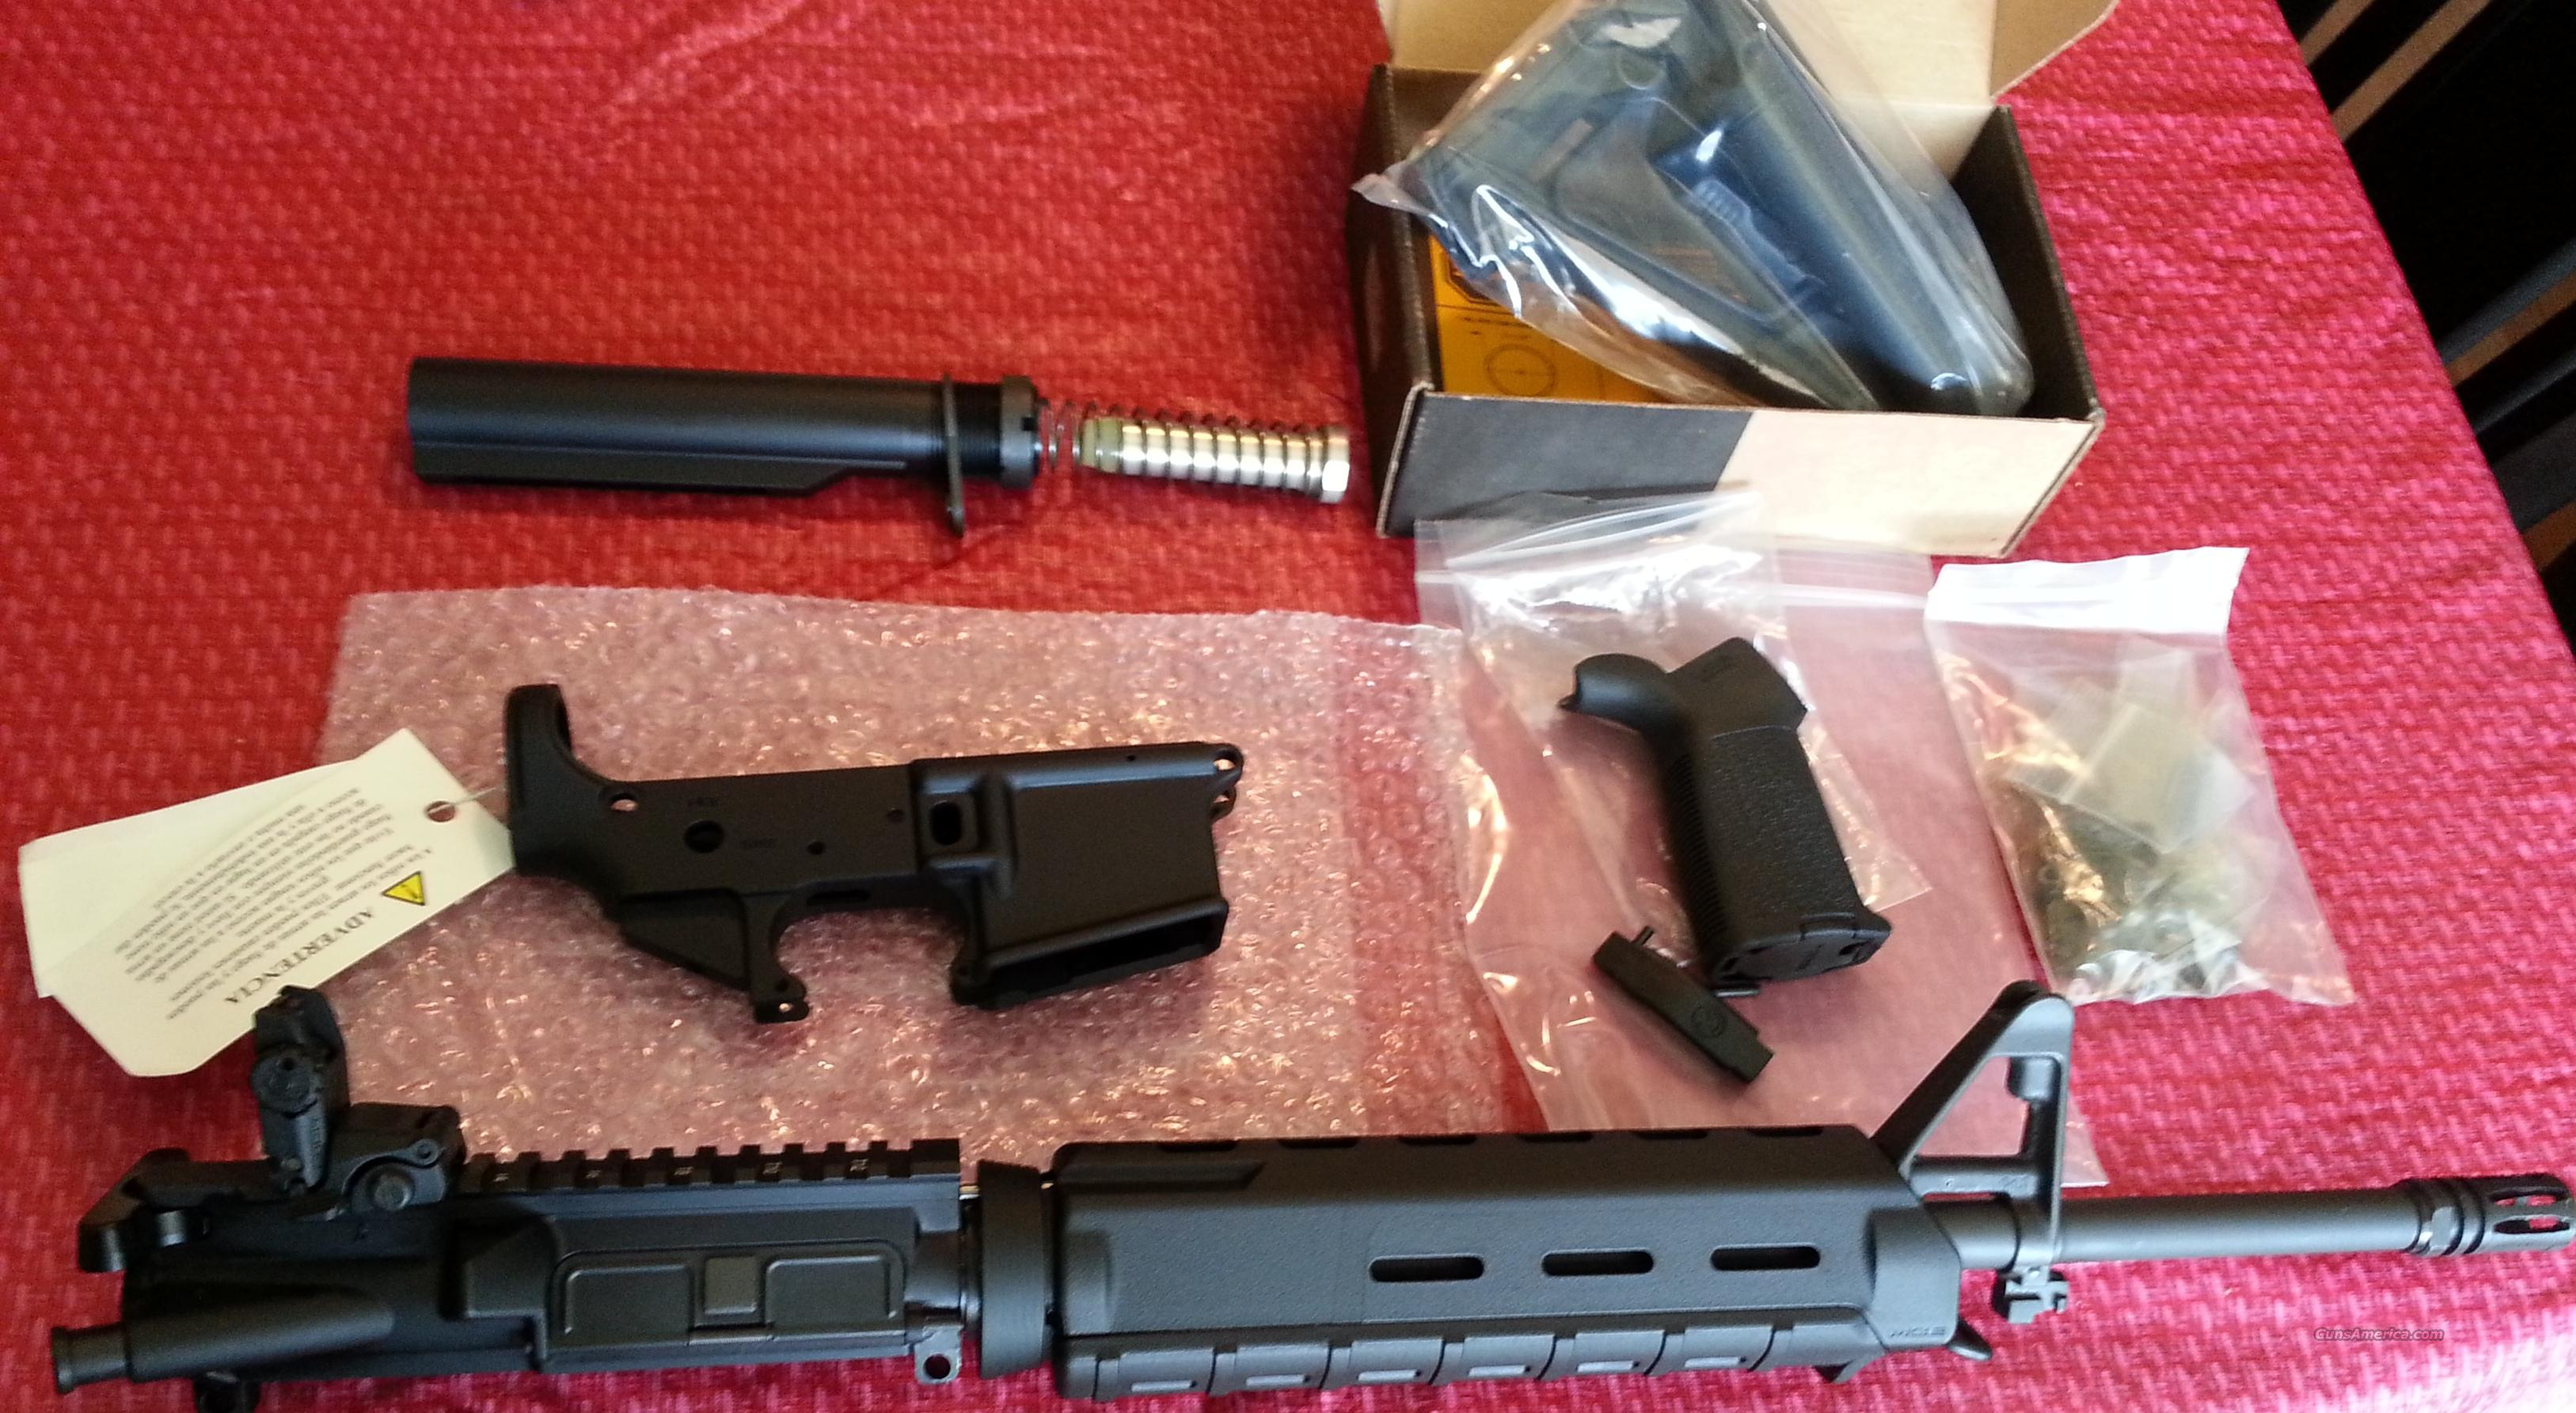 COMPLETE AR15 BUILD KIT A2  Guns > Rifles > AR-15 Rifles - Small Manufacturers > Complete Rifle